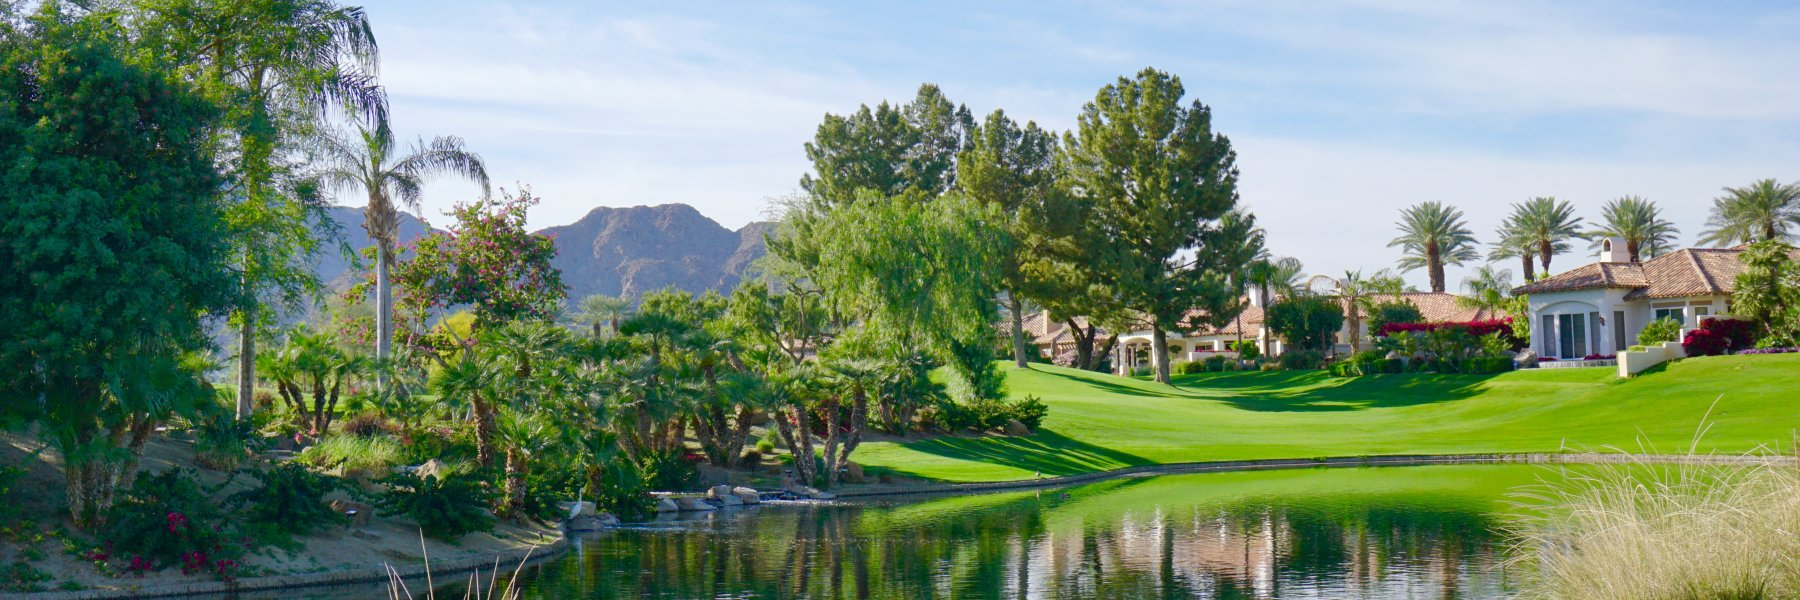 Rancho La Quinta Country Club is a community of homes in La Quinta California